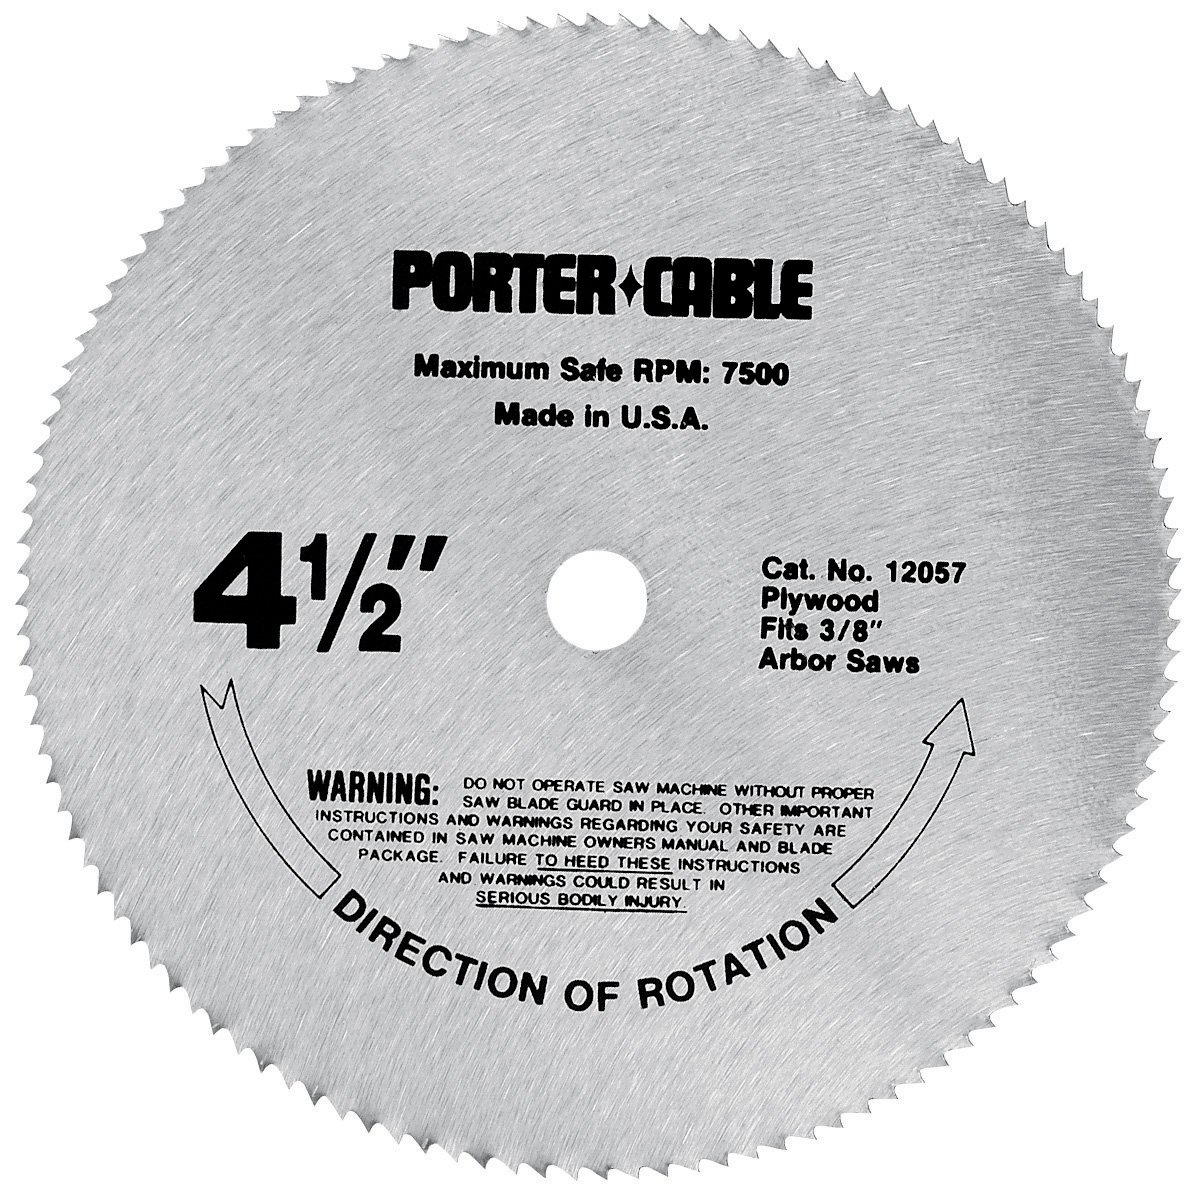 Porter cable 12057 4 12 inch 120 tooth tcg plywood cutting saw porter cable 12057 4 12 inch 120 tooth tcg plywood cutting saw blade with 38 inch arbor porter cable saw blades amazon greentooth Gallery